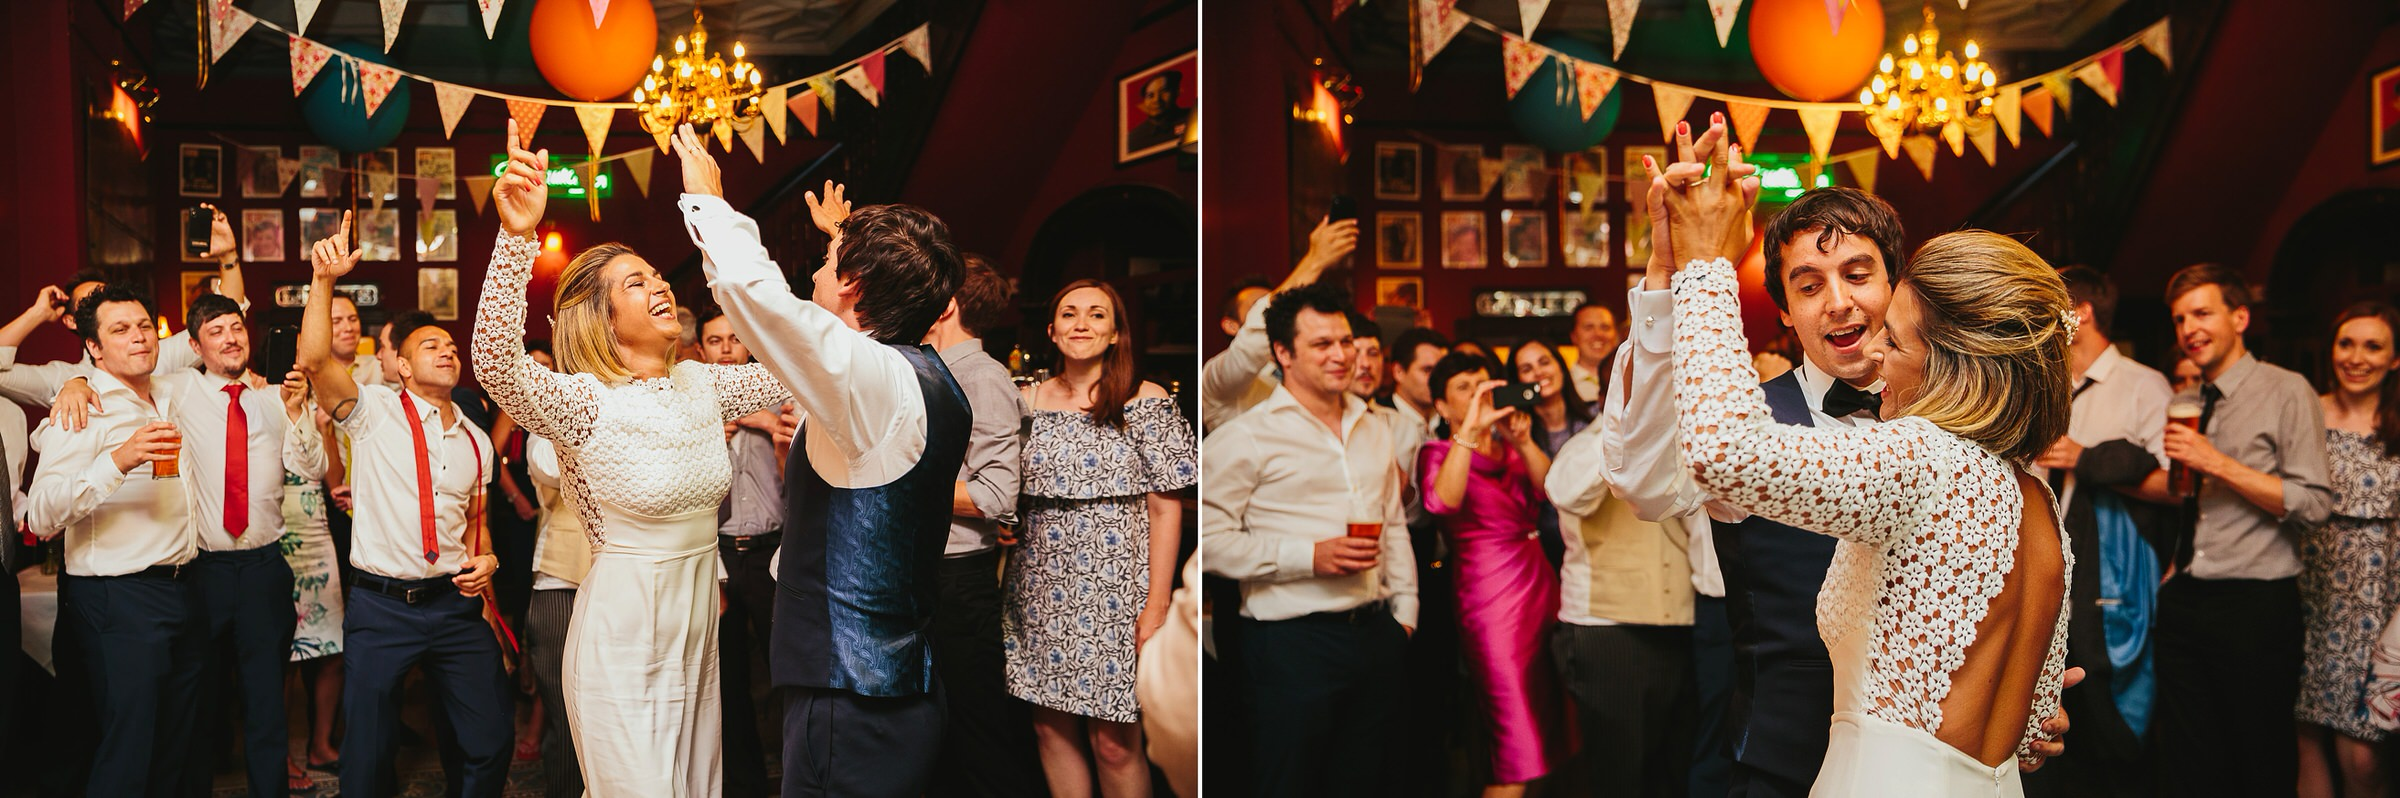 england world cup wedding